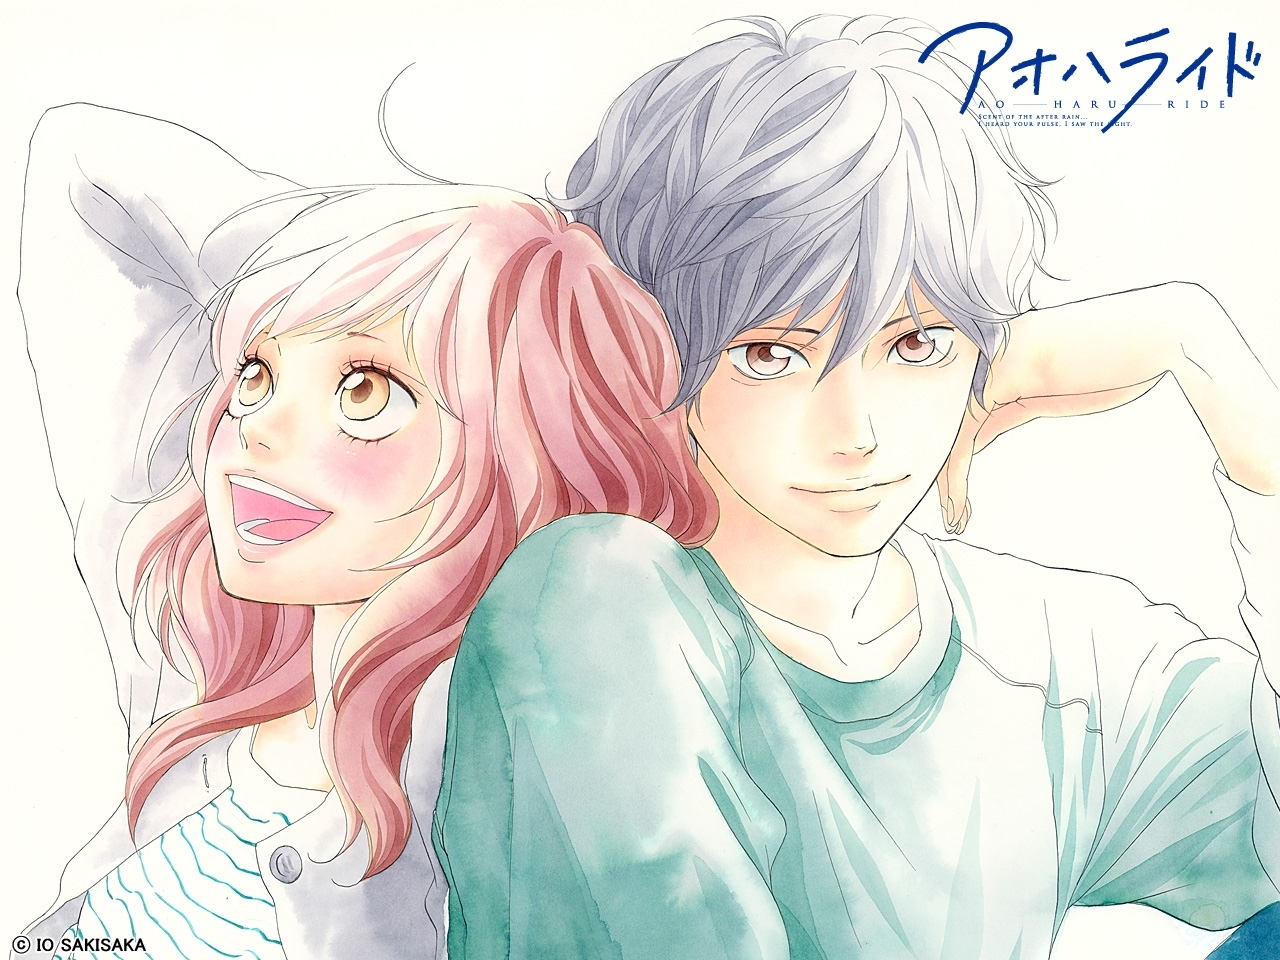 ao haru ride (blue spring ride), wallpaper - zerochan anime image board